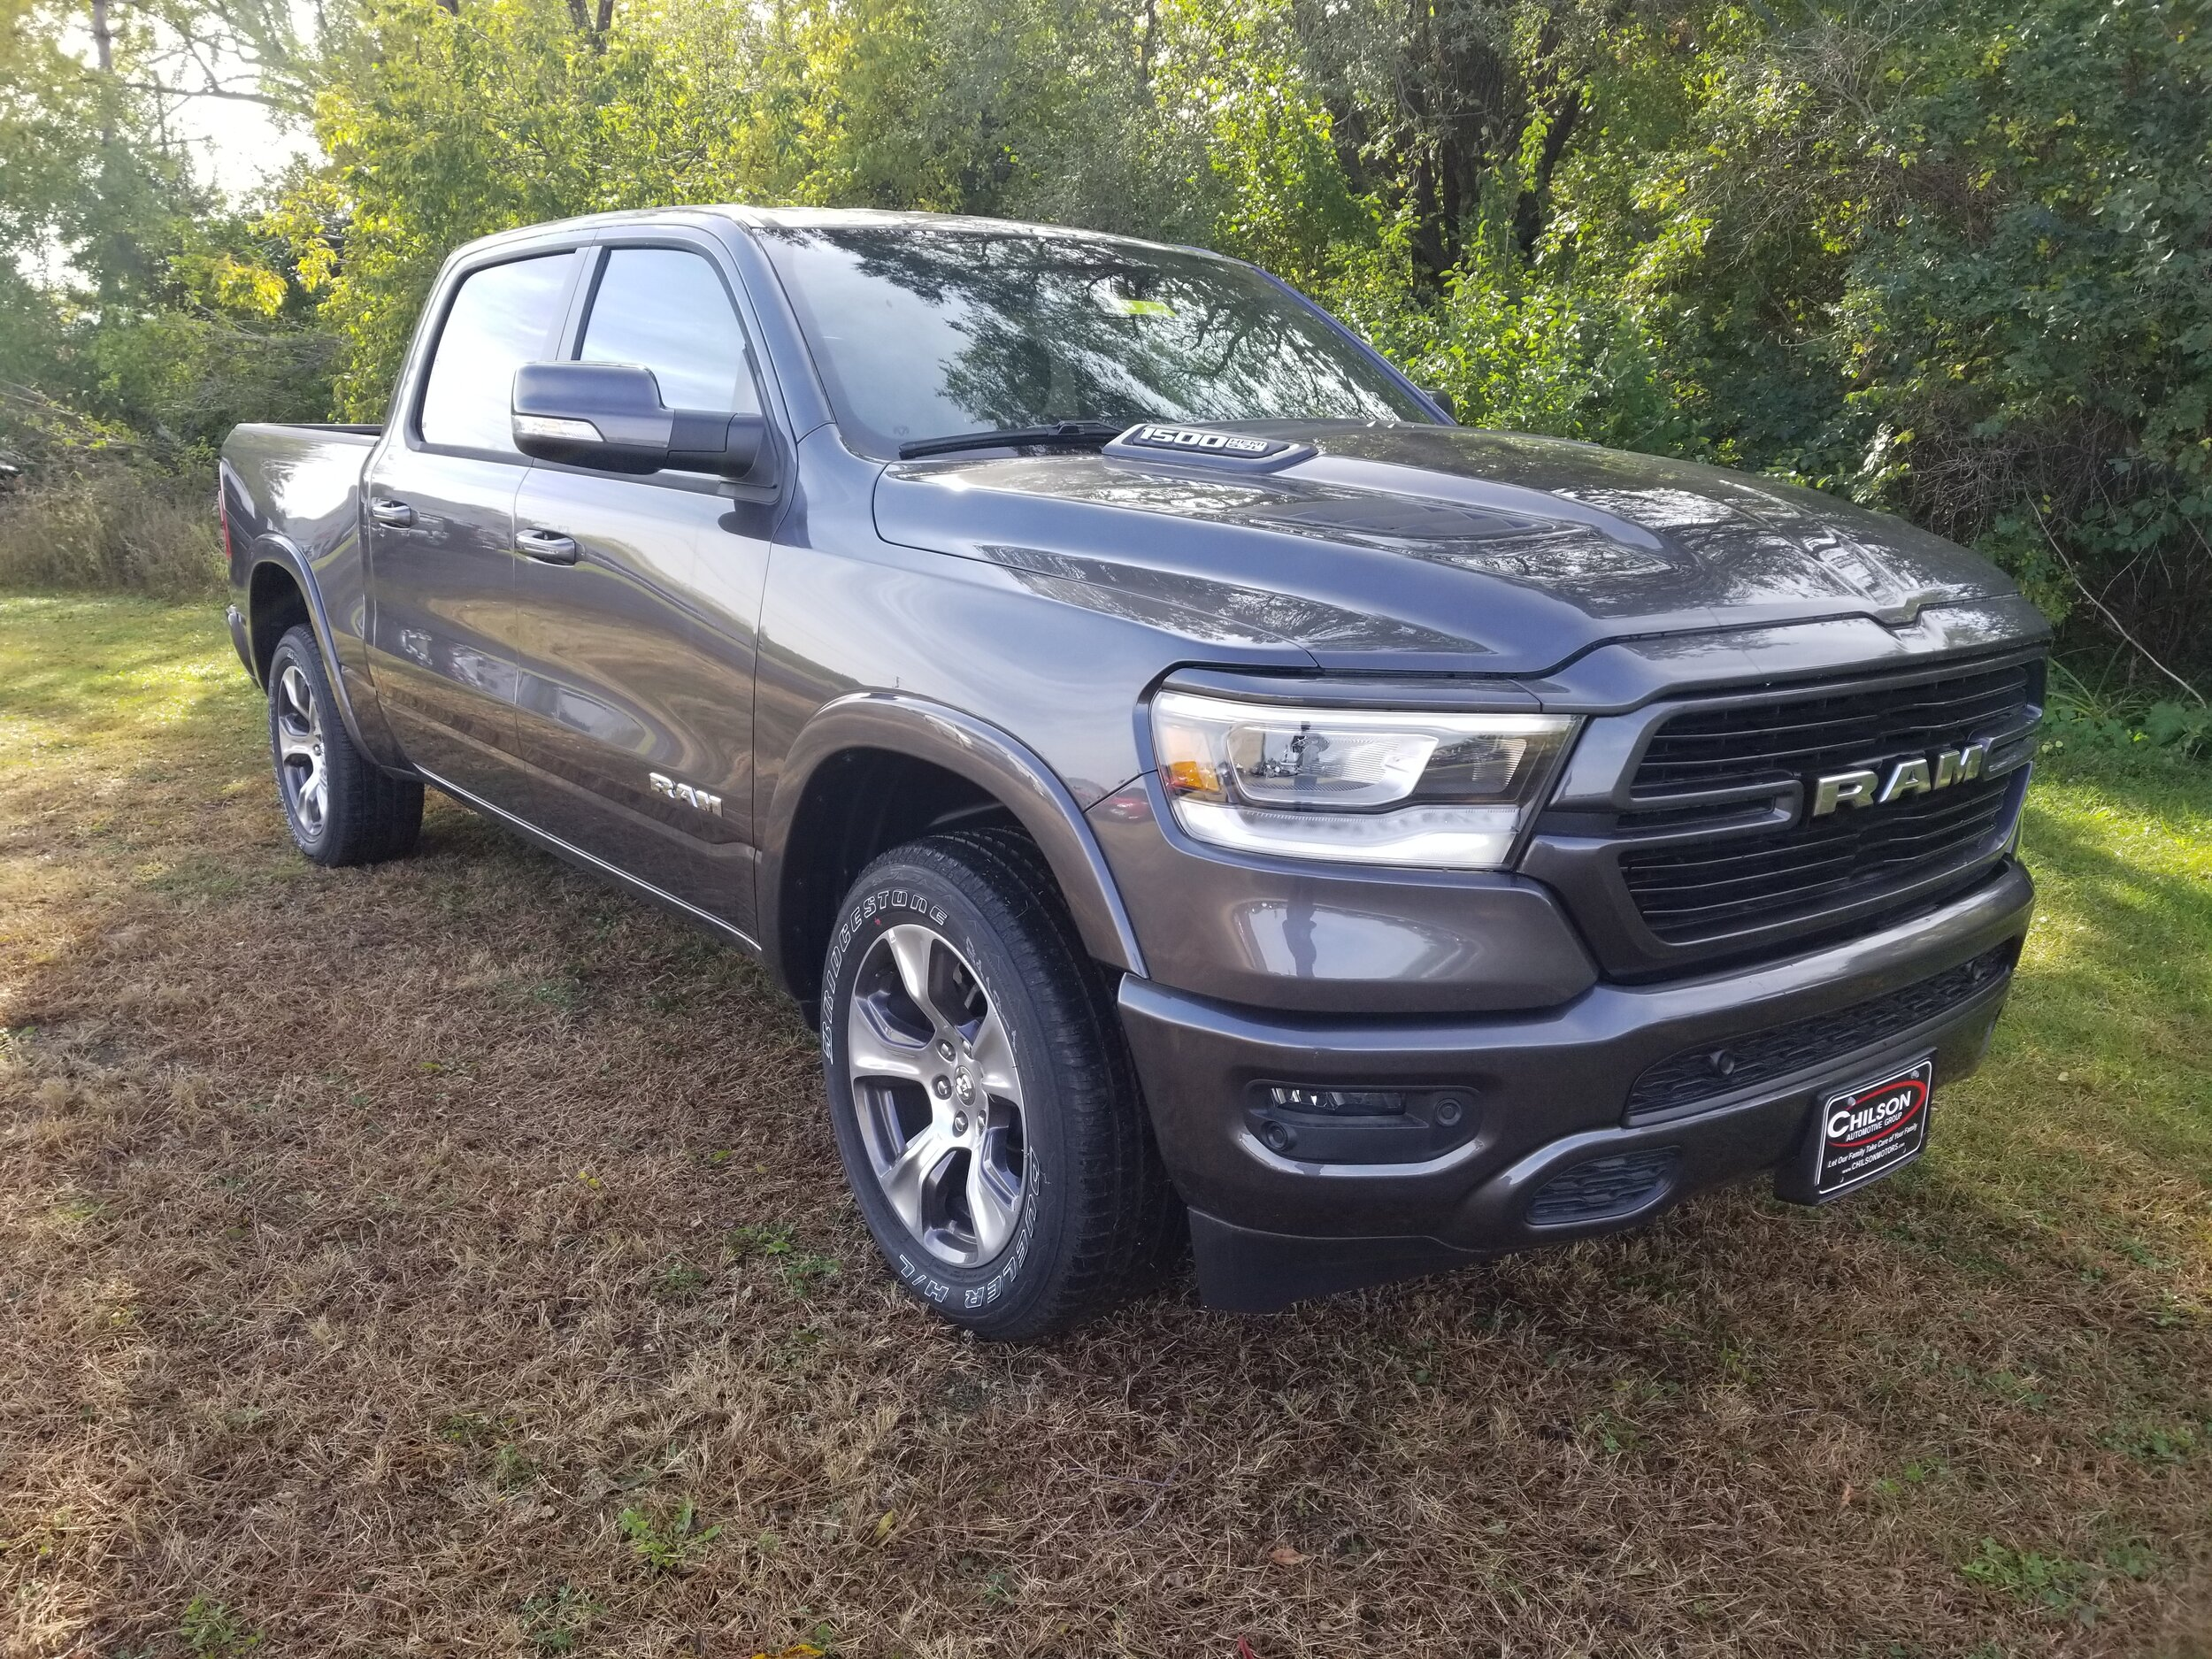 """19'-20' Ram 1500 """"NEW"""" body style. Products will not interchange with 19'-20' """"CLASSIC"""" models. Photo courtesy of Chilson Automotive."""